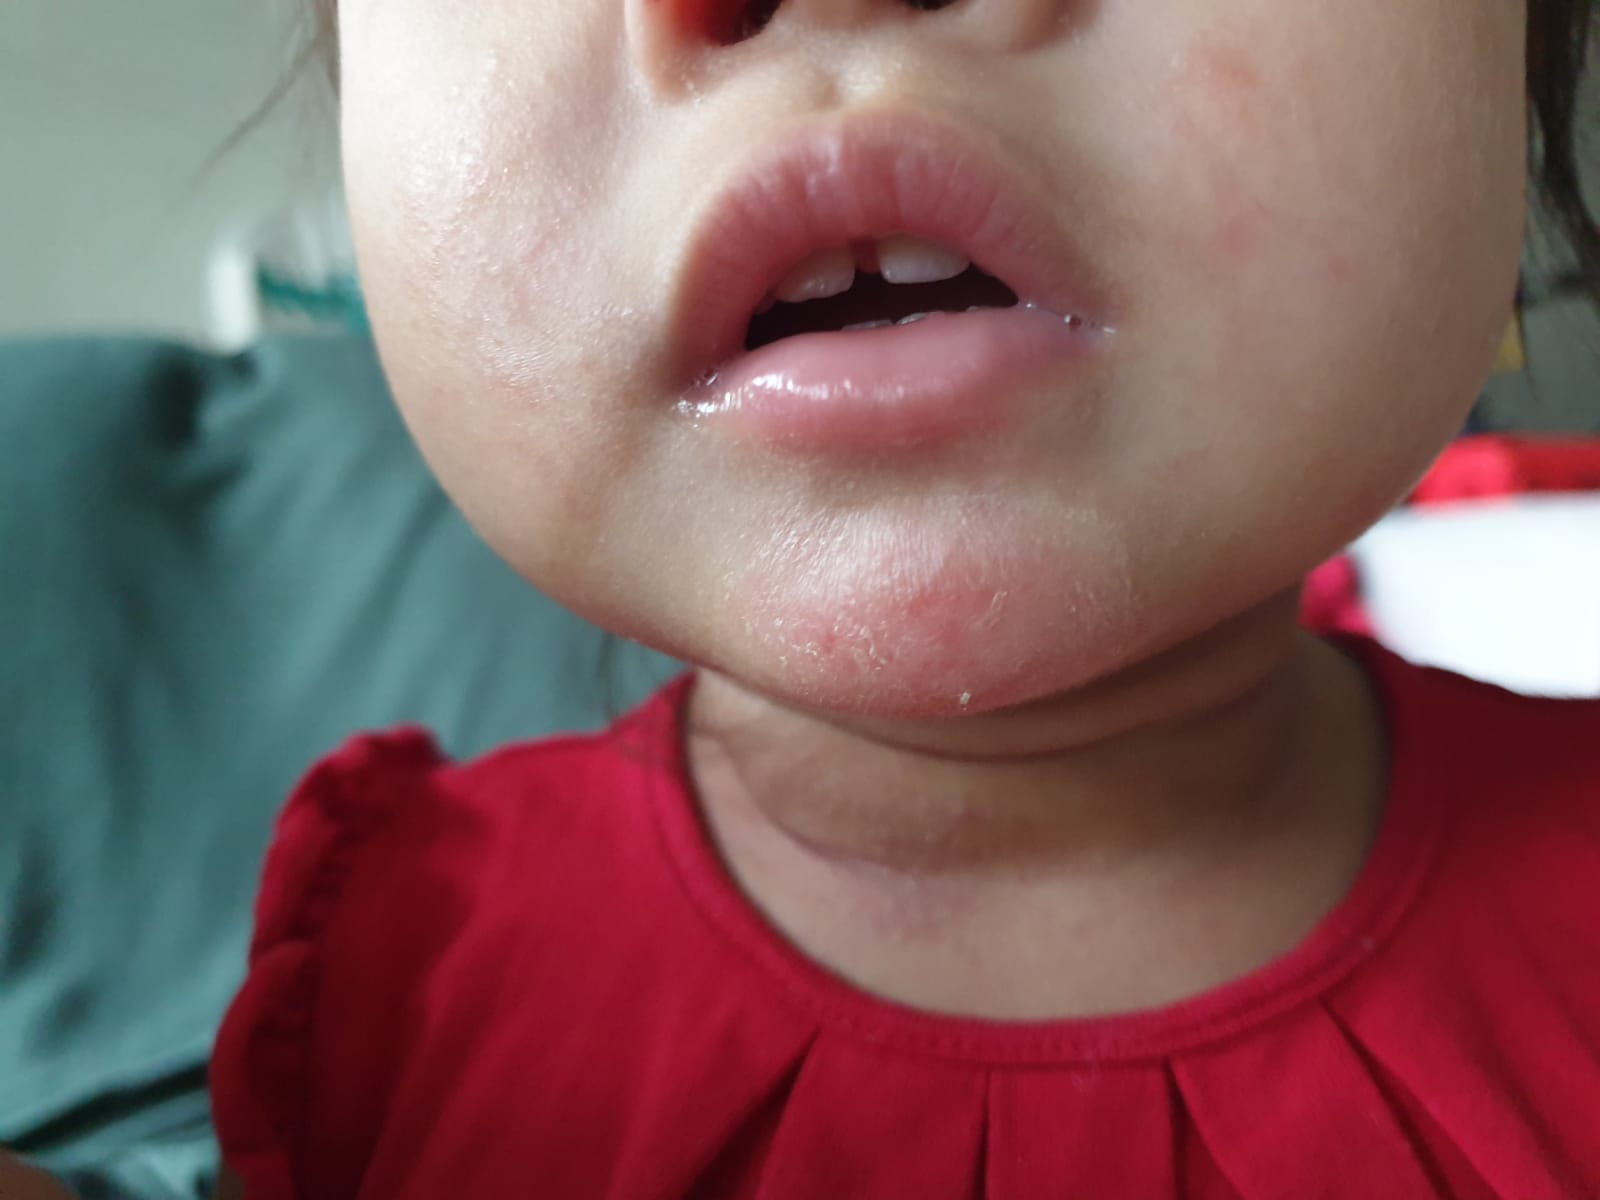 After 3 days: Baby's eczema wound has closed up; less redness